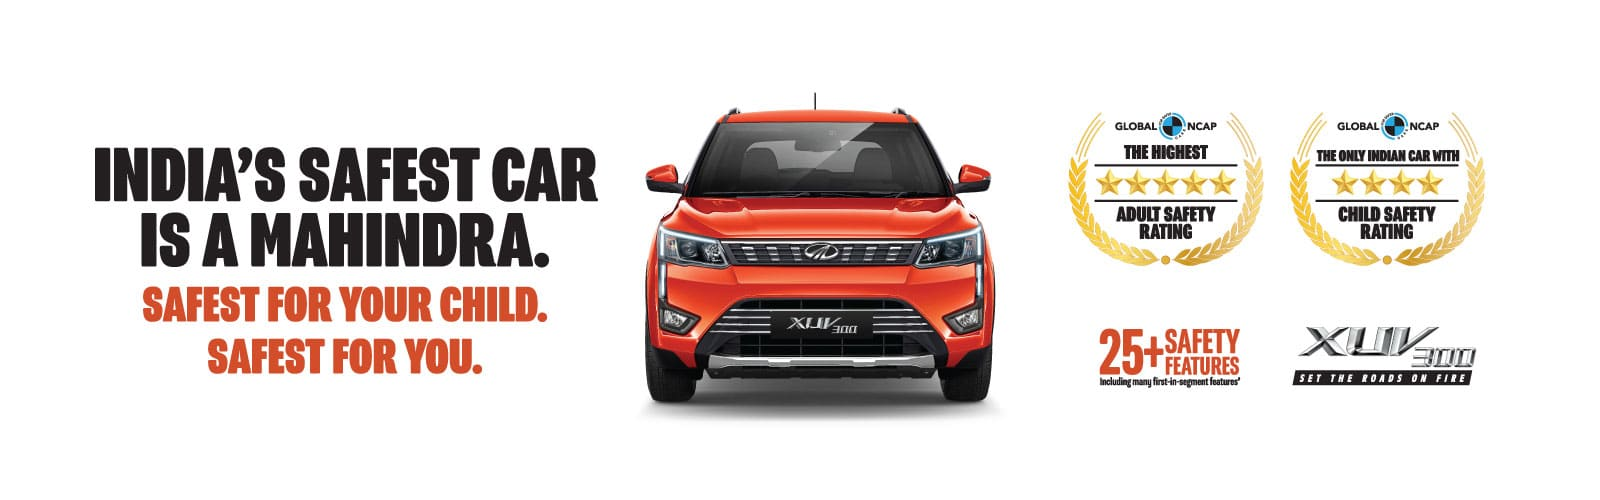 Mahindra XUV300 5 Star rated in India